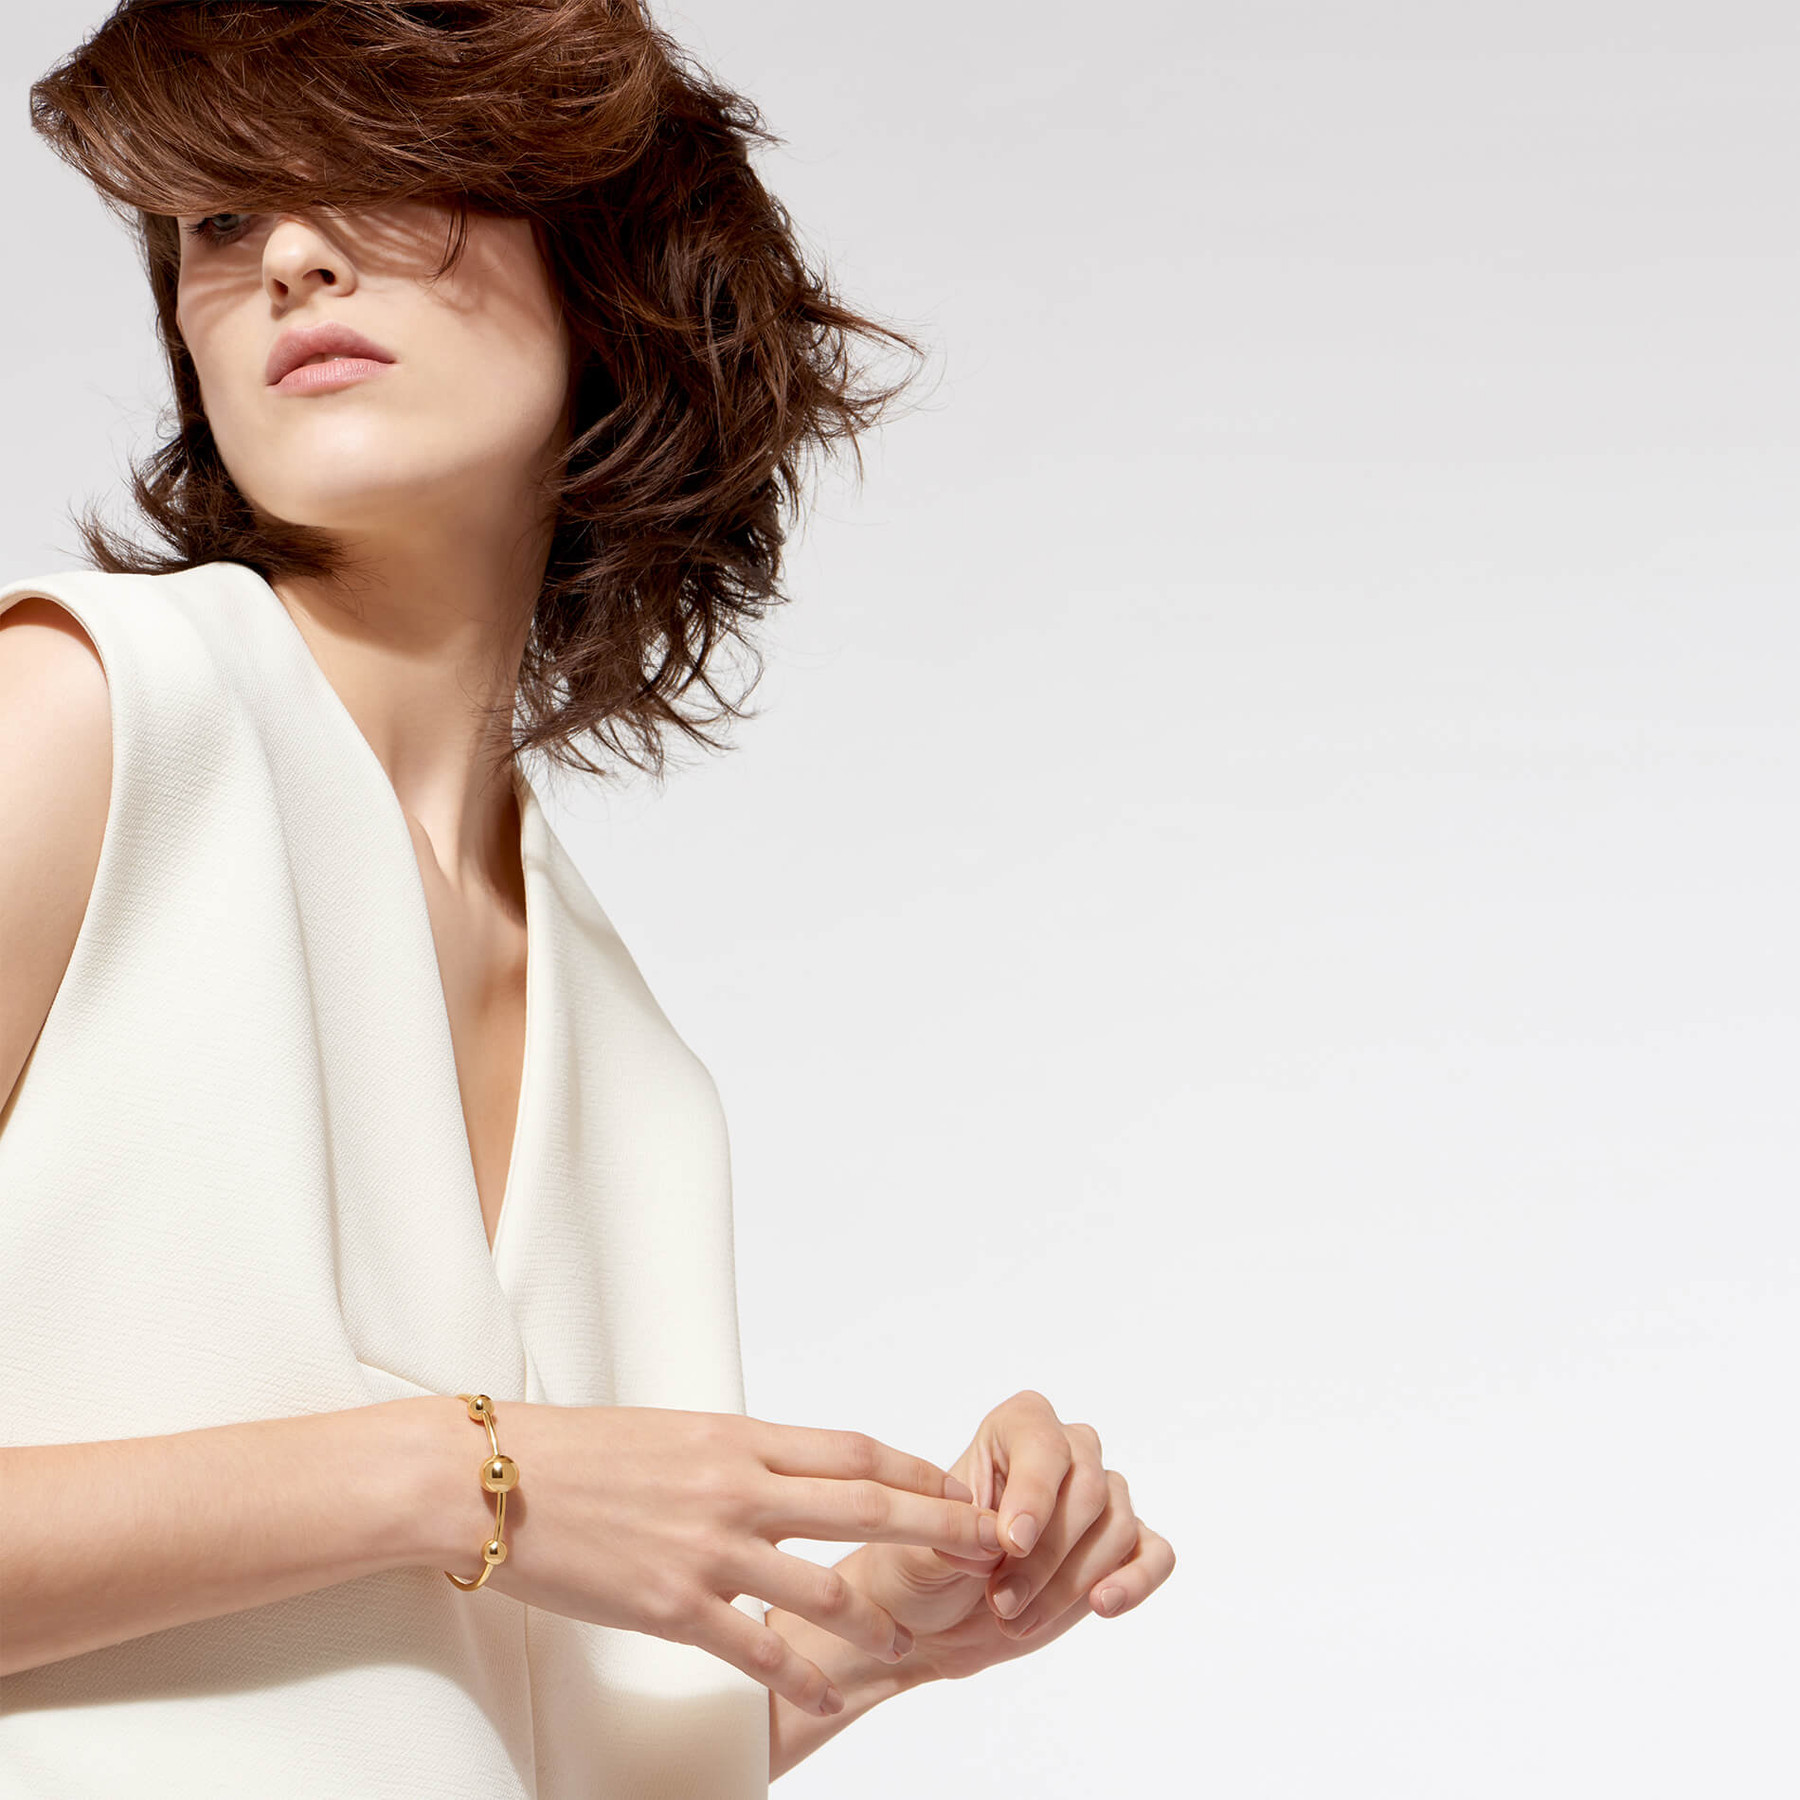 redheaded model wearing 22 karat gold wrist cuff with multiple spheres